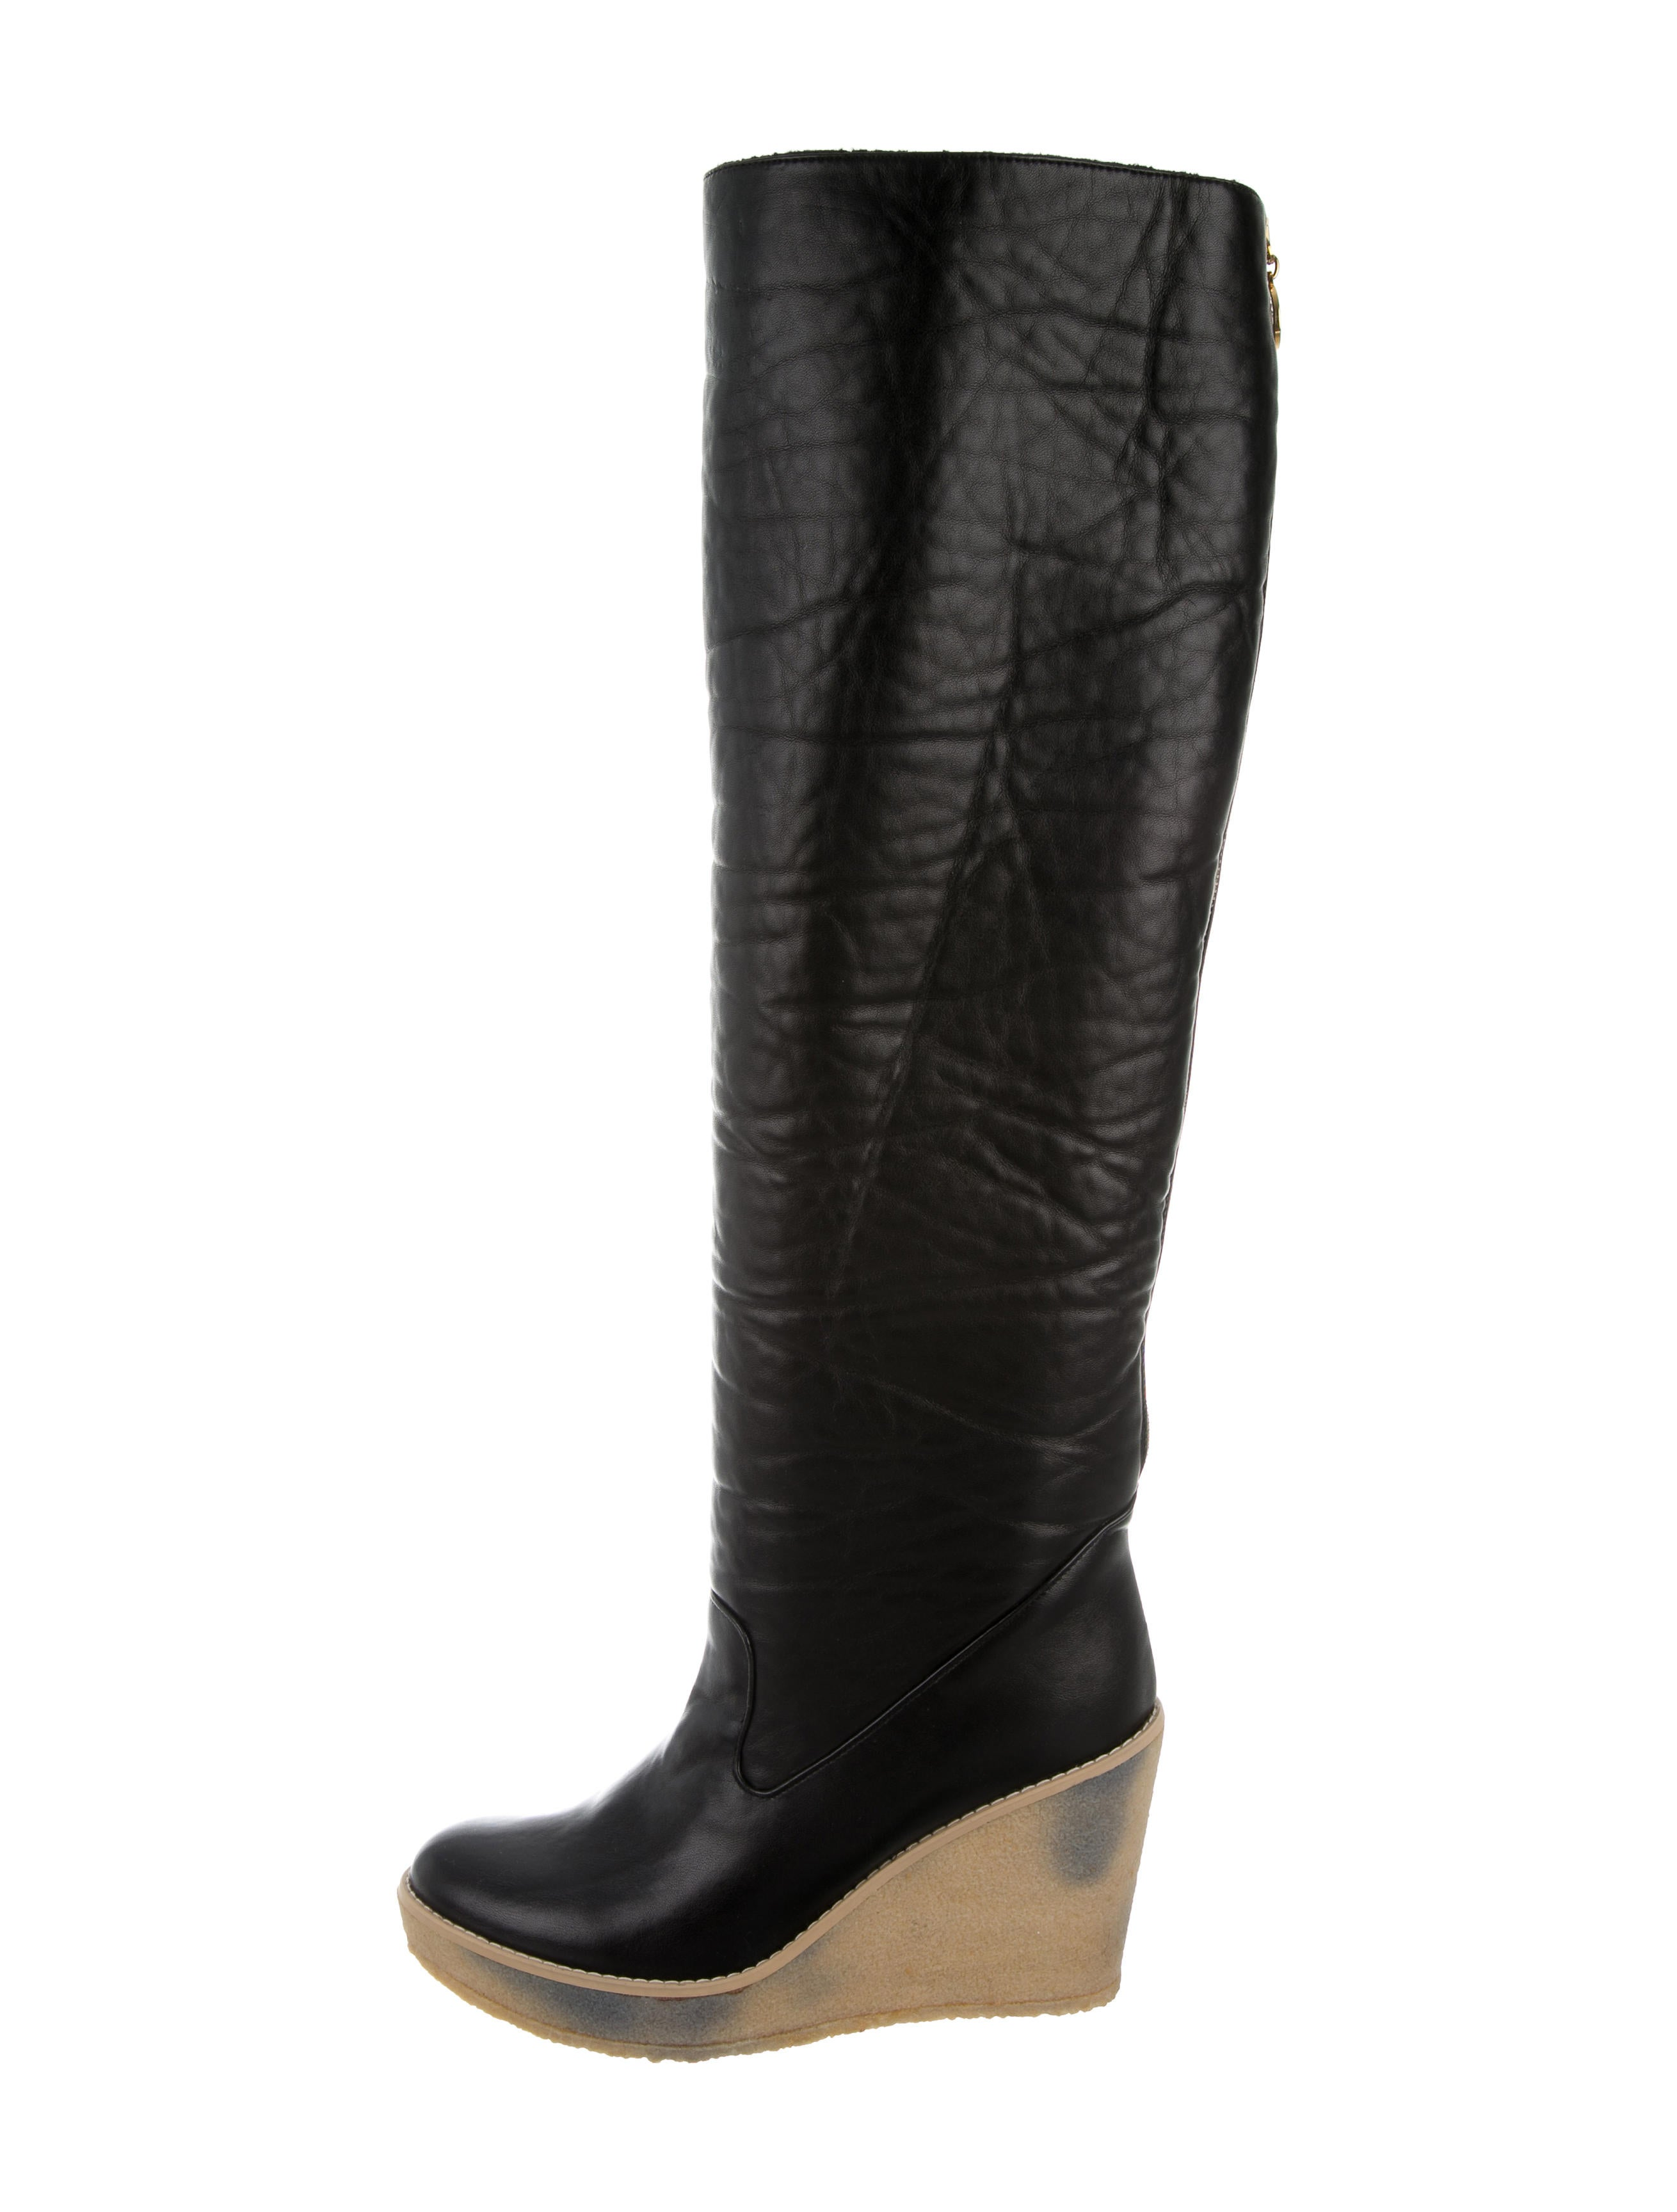 stella mccartney toe wedge boots shoes stl43675